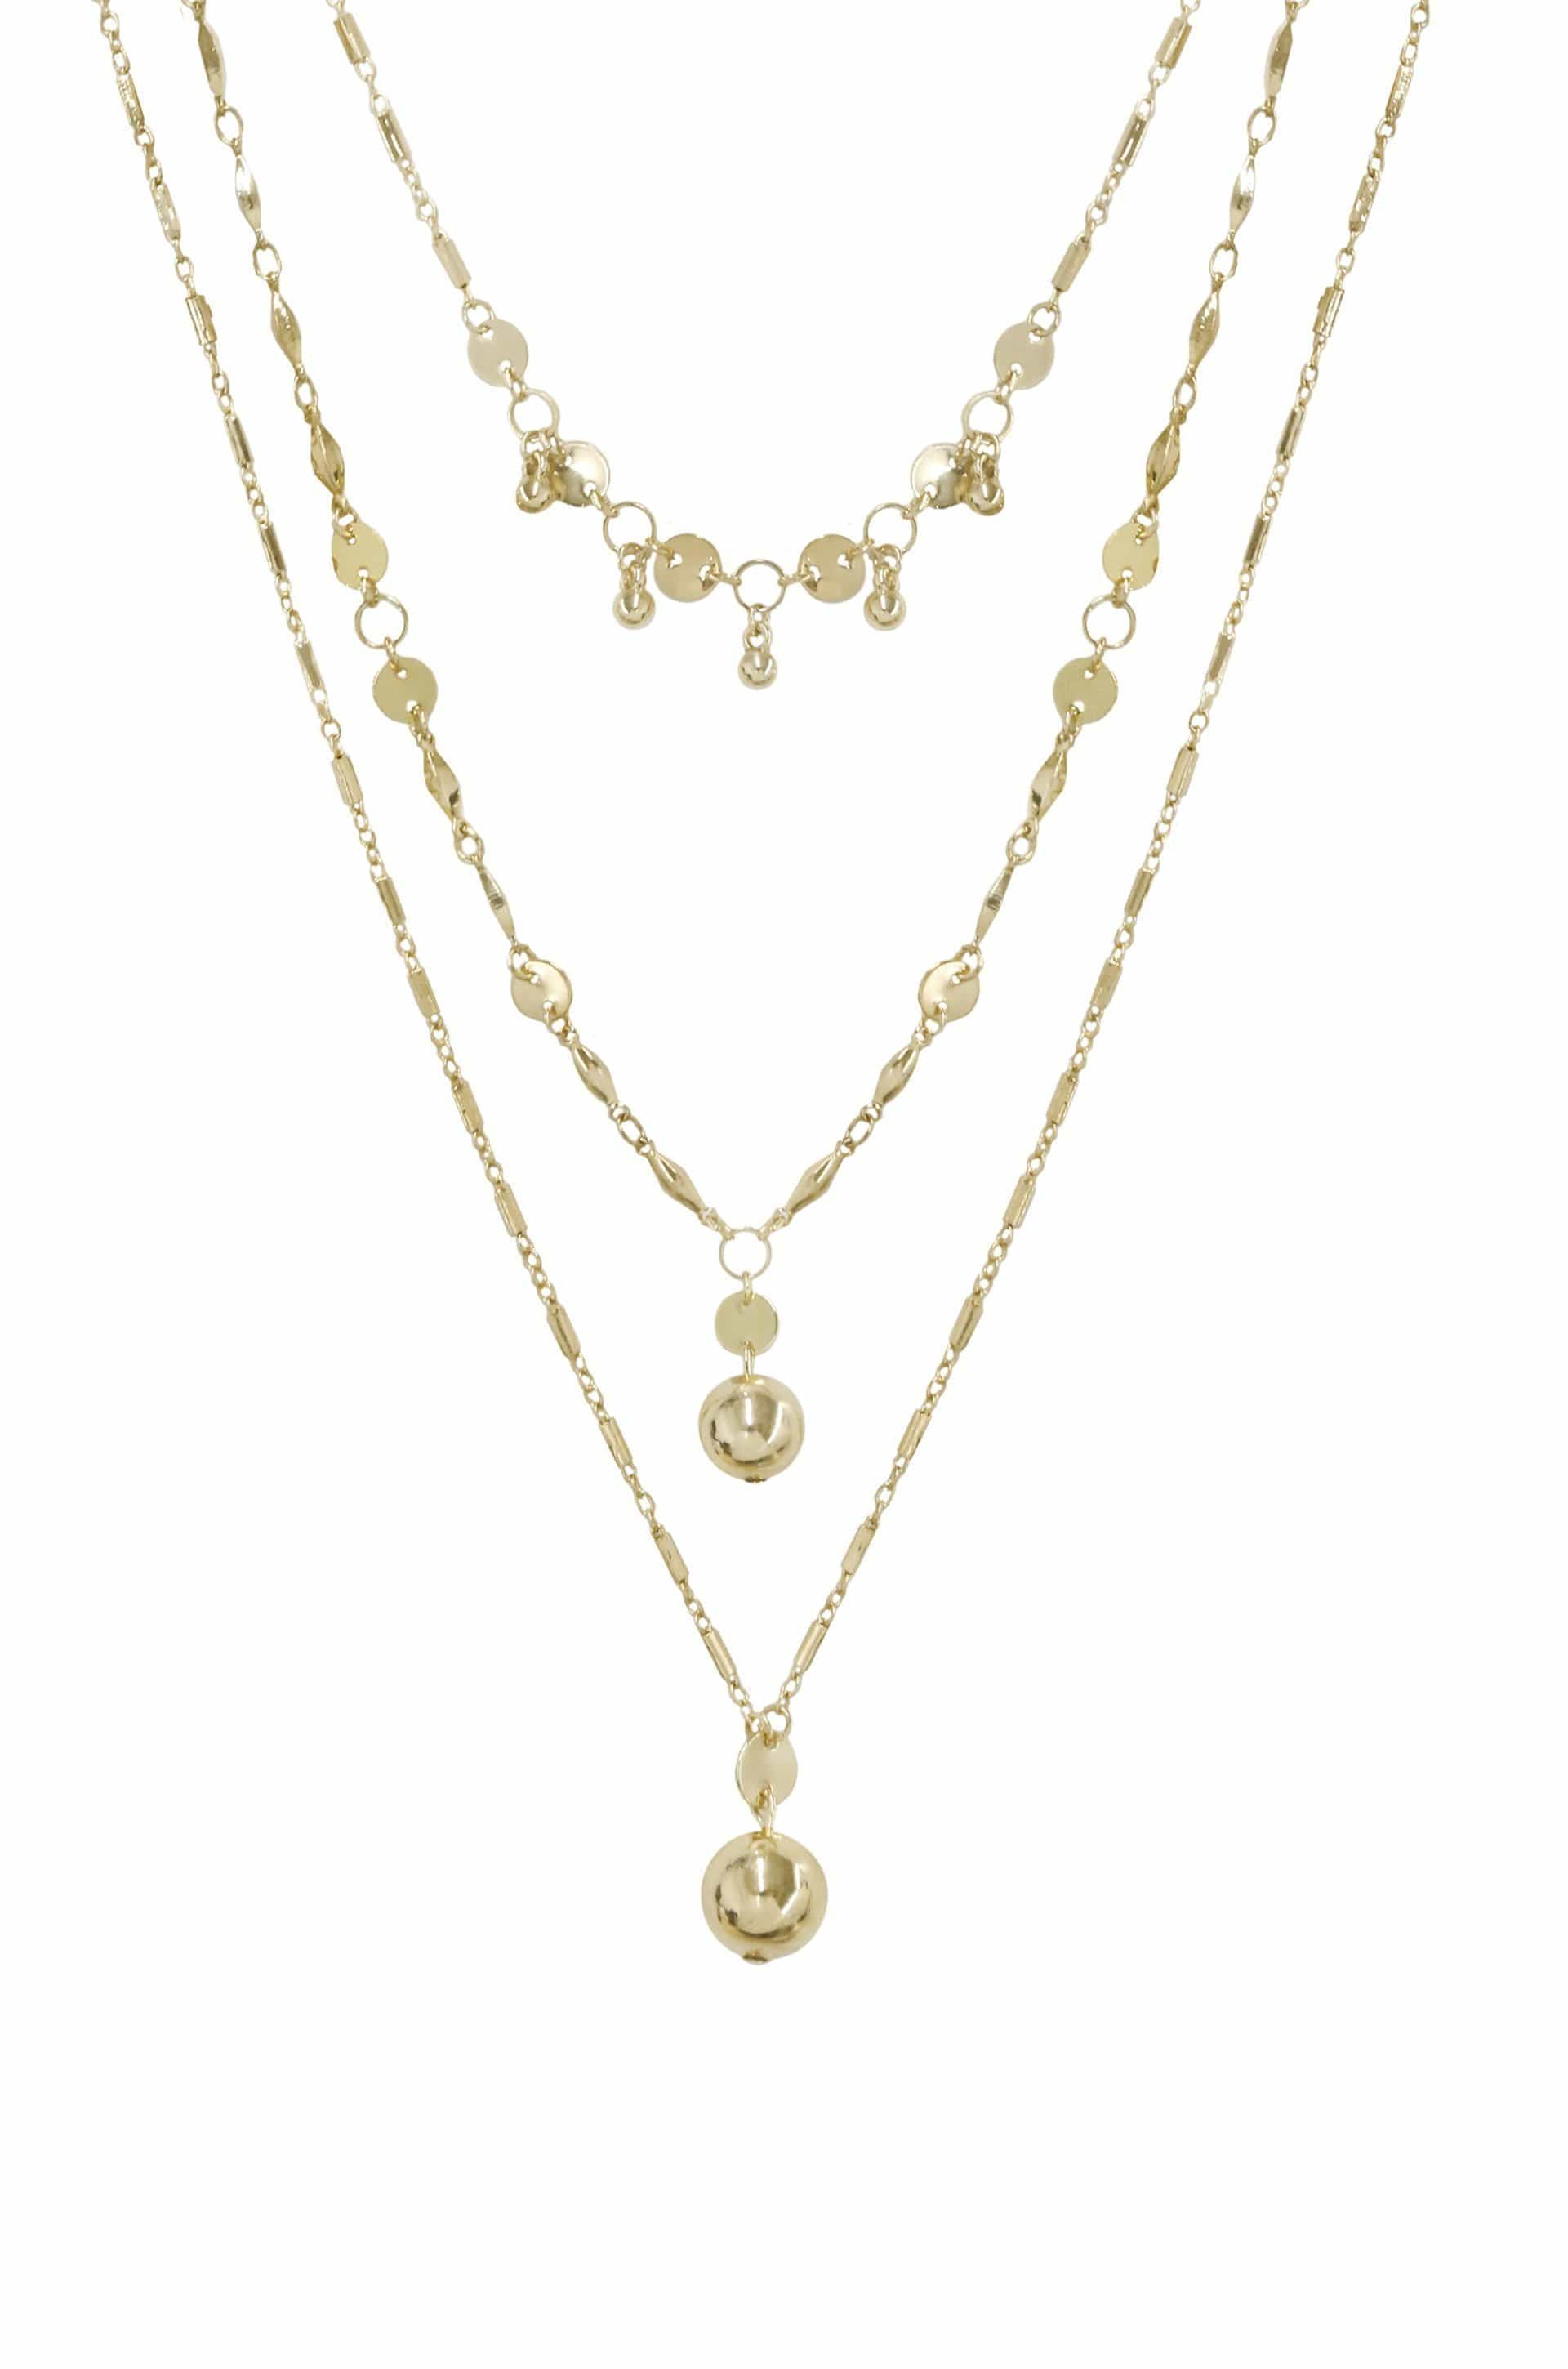 Triple Threat Gold Ball Charm Necklace Set - SteelJoy!